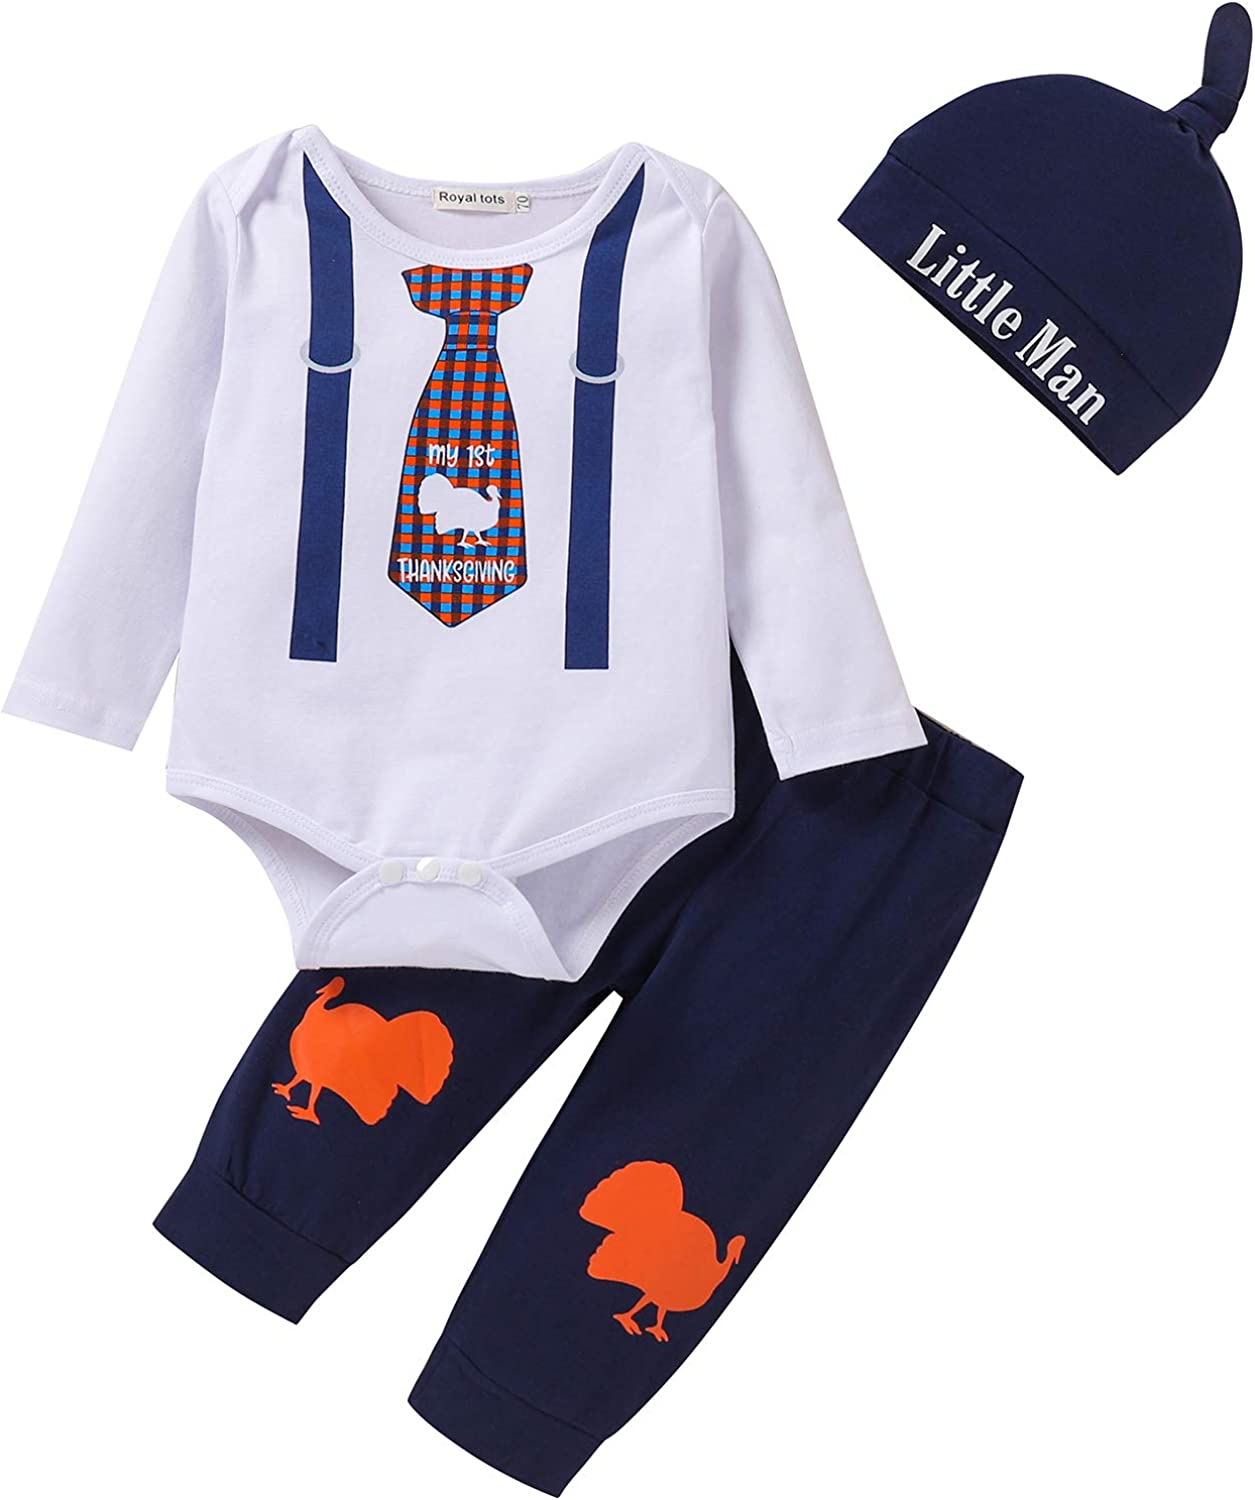 3Pcs Baby Boys Clothes Sets, Cute Pattern Print Romper + Pants + Hat Outfits Set (Long Sleeves Thanksgiving Day 0-3months)